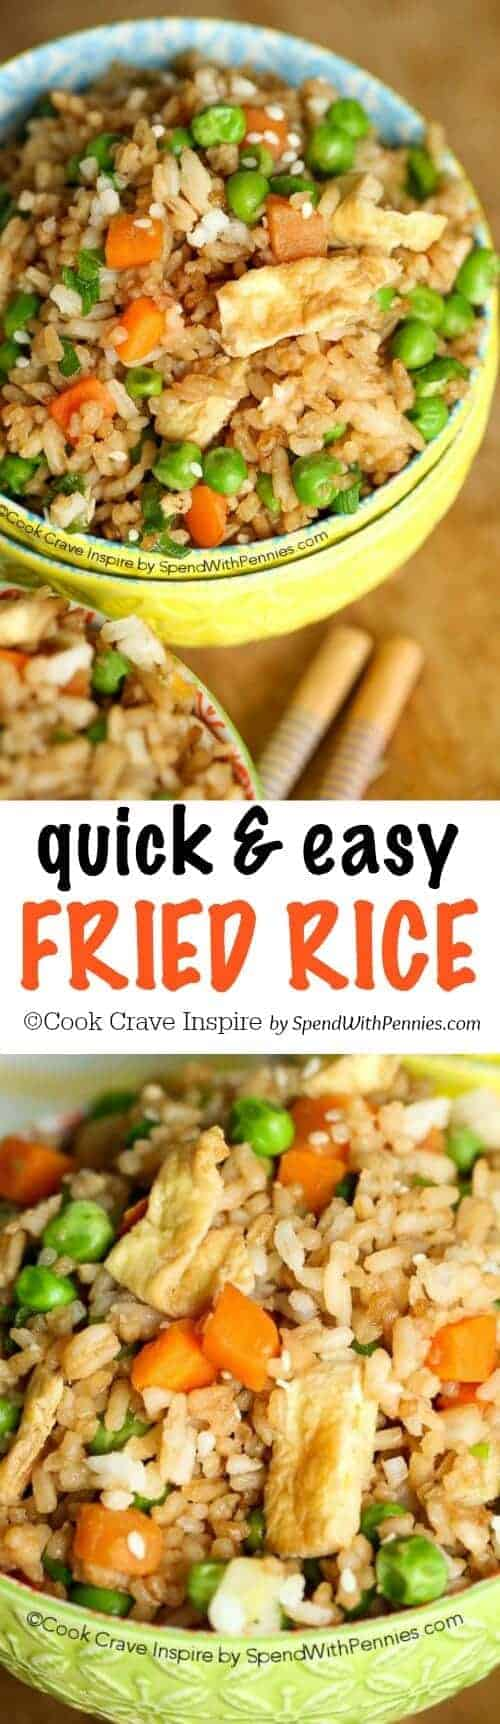 quick & easy fried rice in a bowl with a title